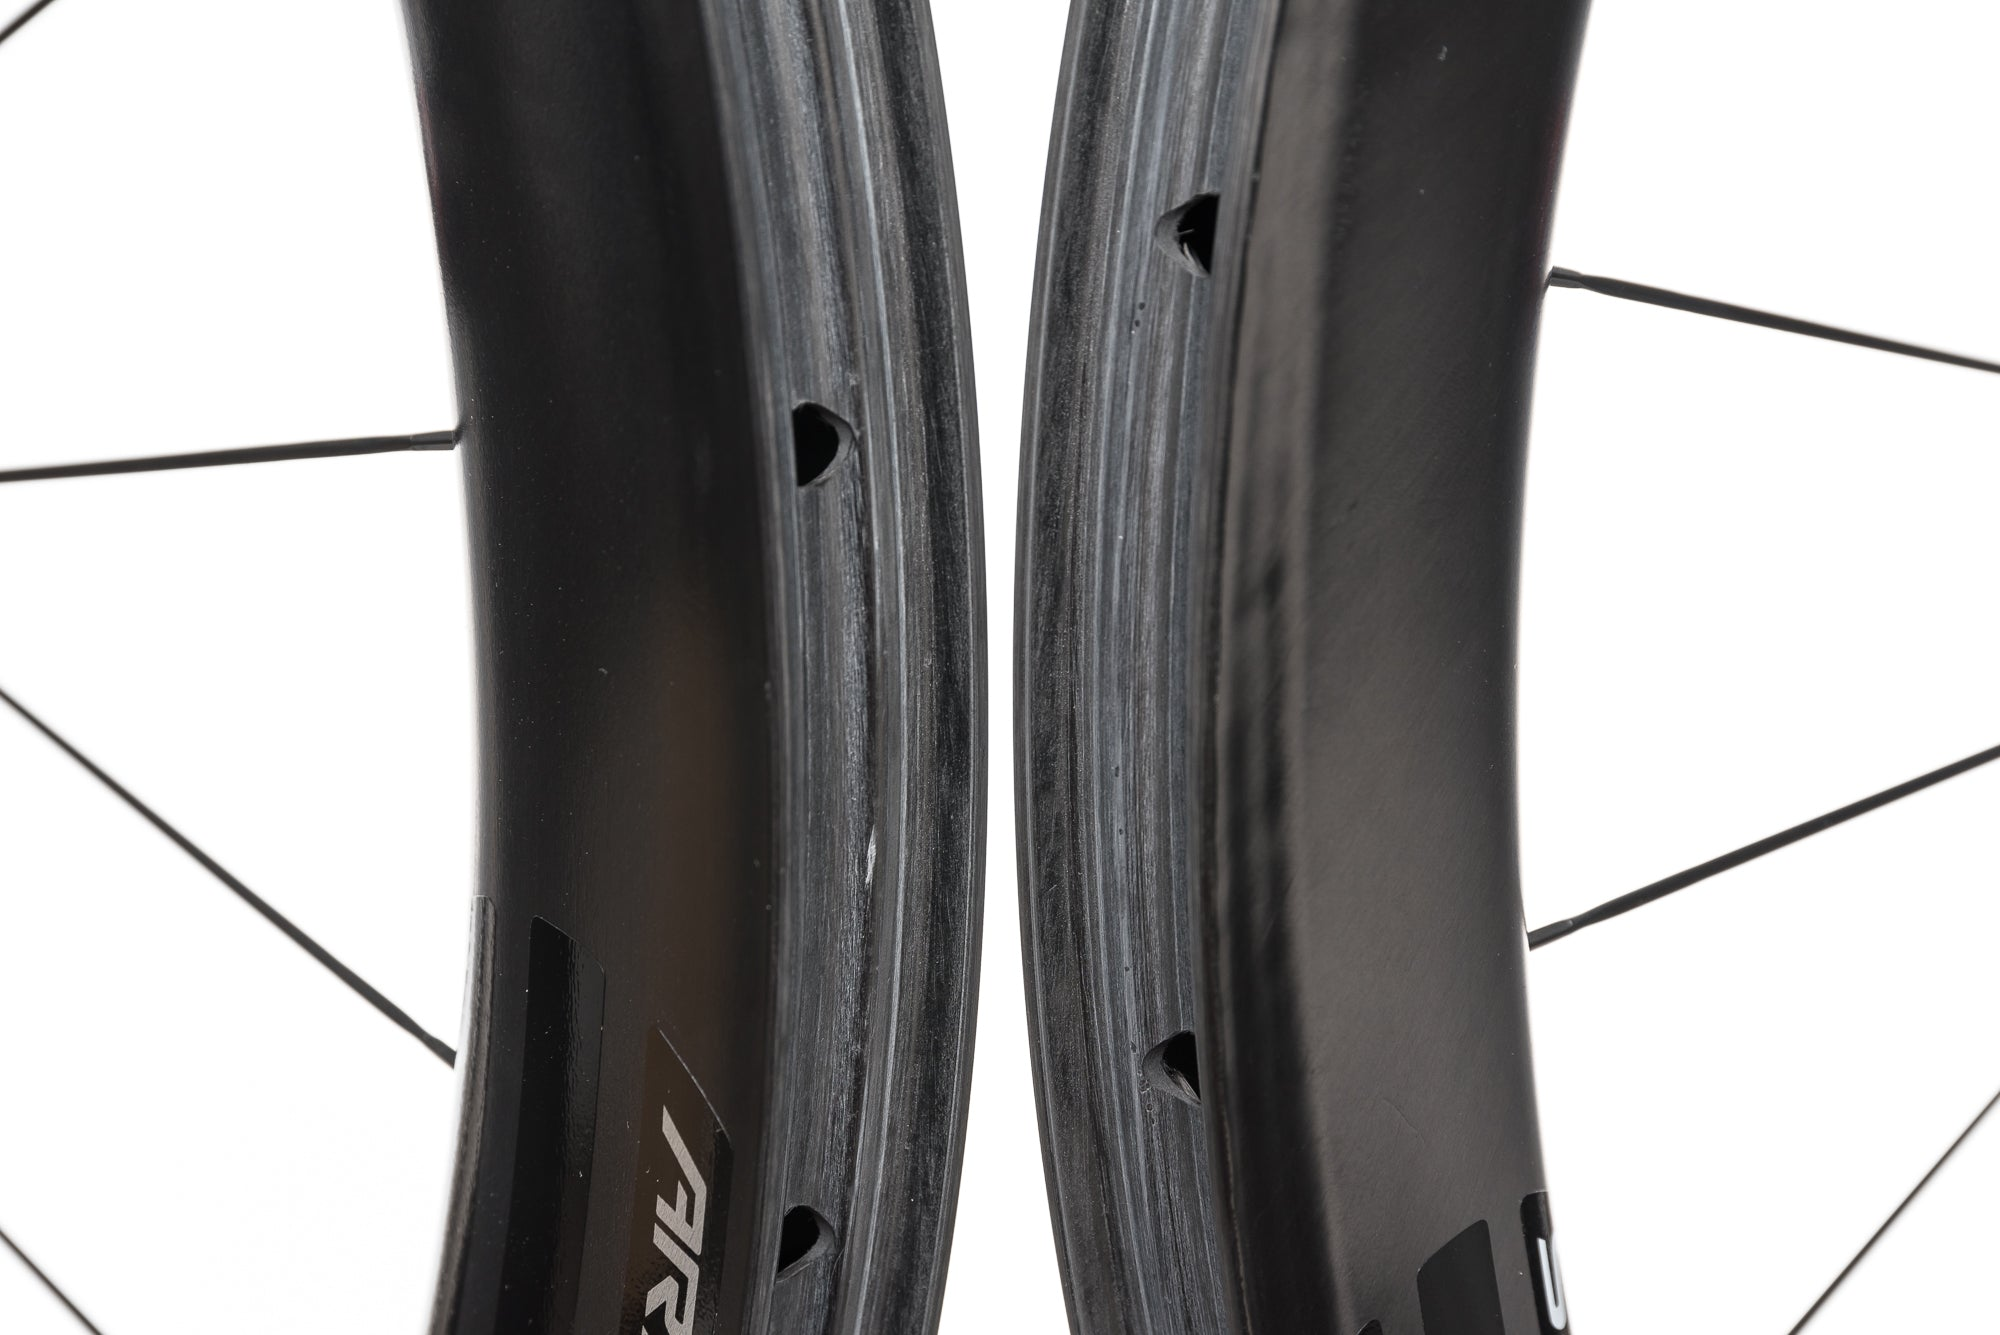 ENVE SES 4.5 AR Disc Carbon Clincher 700c Wheelset